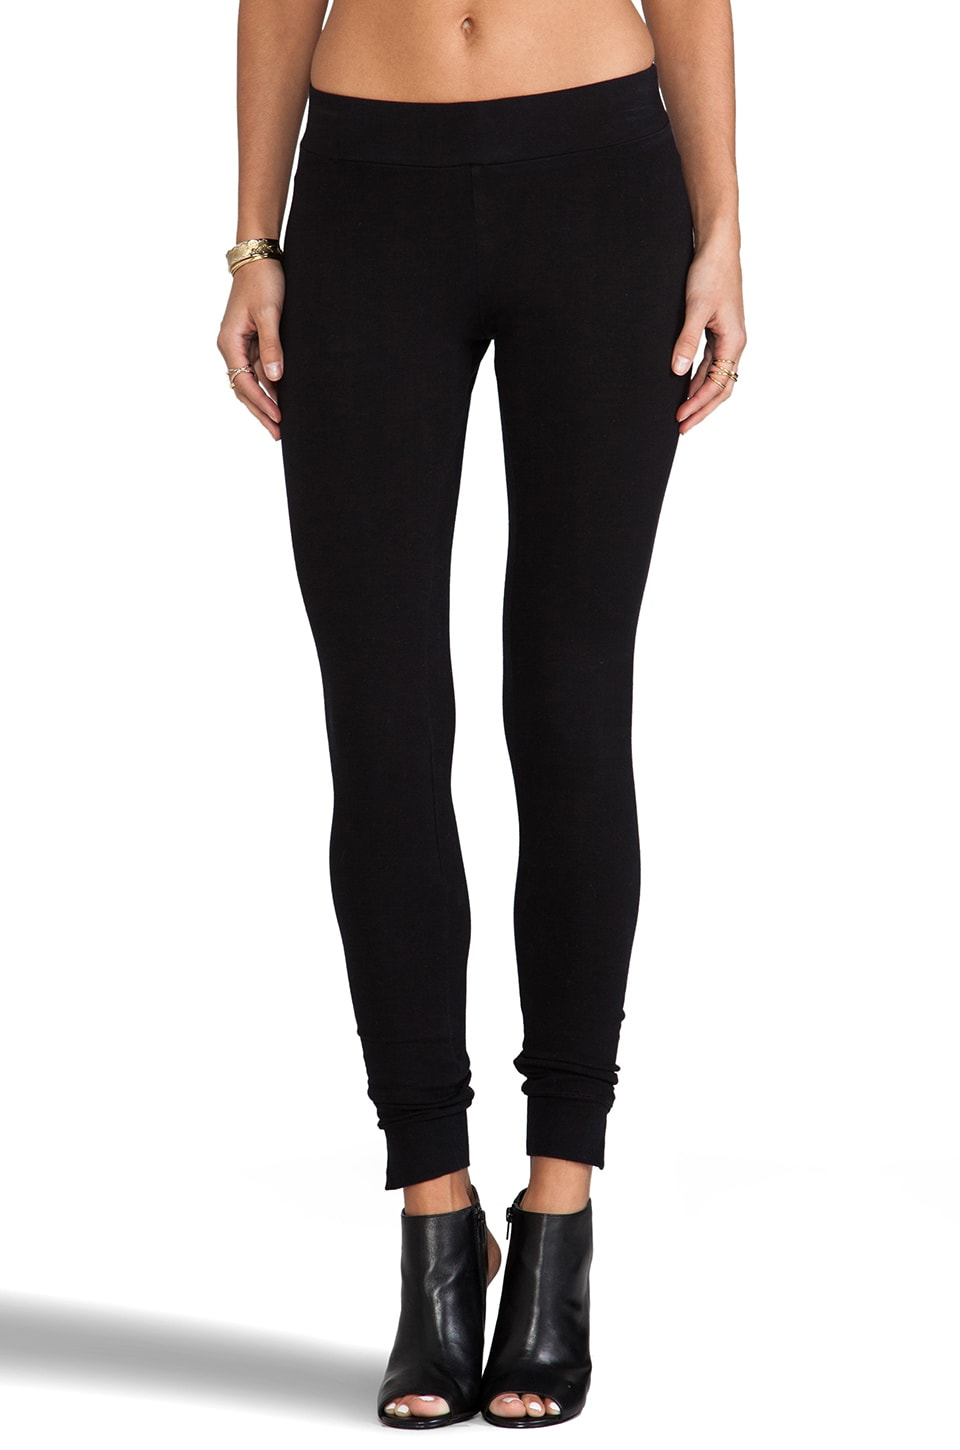 MONROW Basics Legging in Black